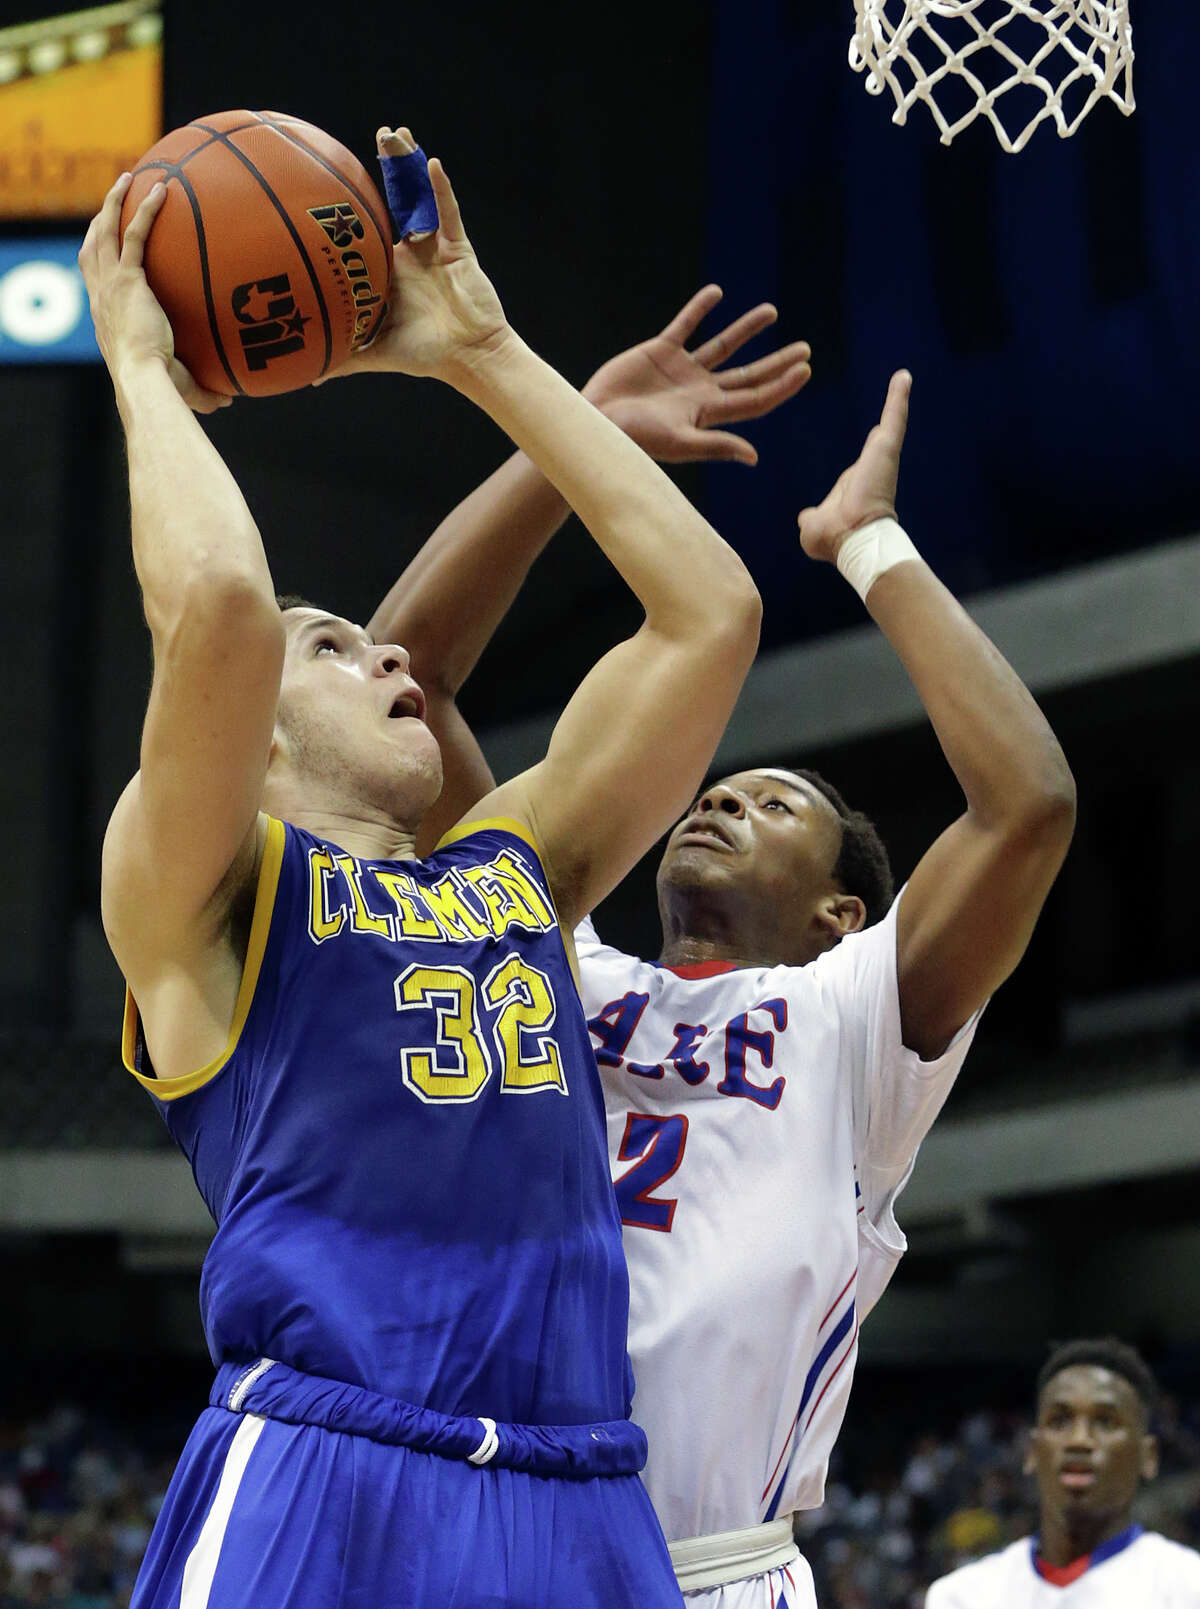 Buffalo forward Cayne Edwards takes the ball up against Bradley George as Clemens plays Houston Clear Lake in the 6A semifinals of the UIL state basketball tournament at the Alamodome in San Antonio on March 13, 2015.